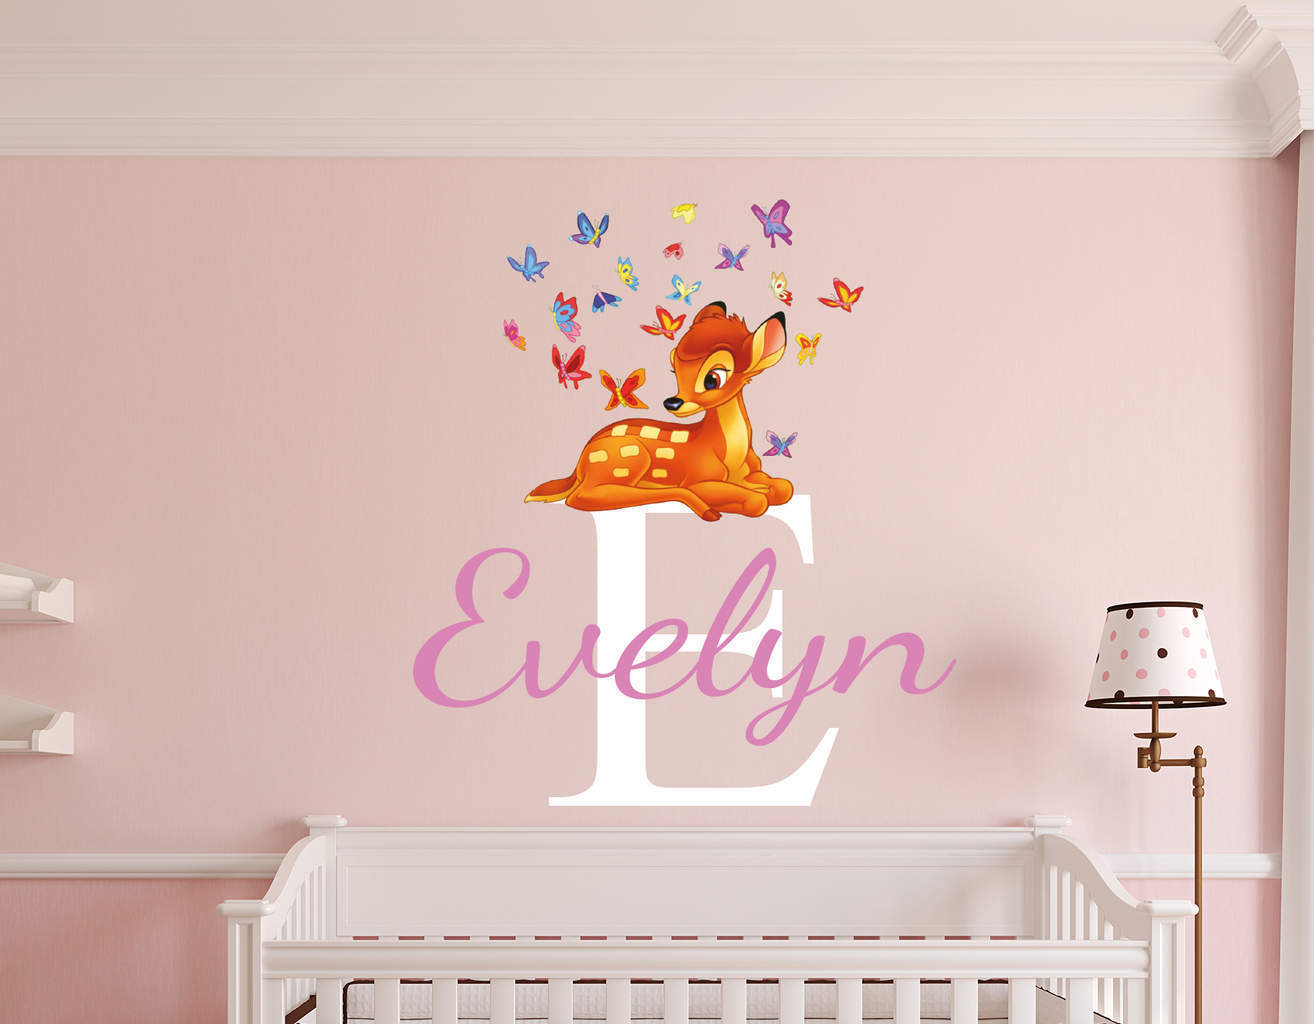 personalised bambi name wall decal sticker. Black Bedroom Furniture Sets. Home Design Ideas